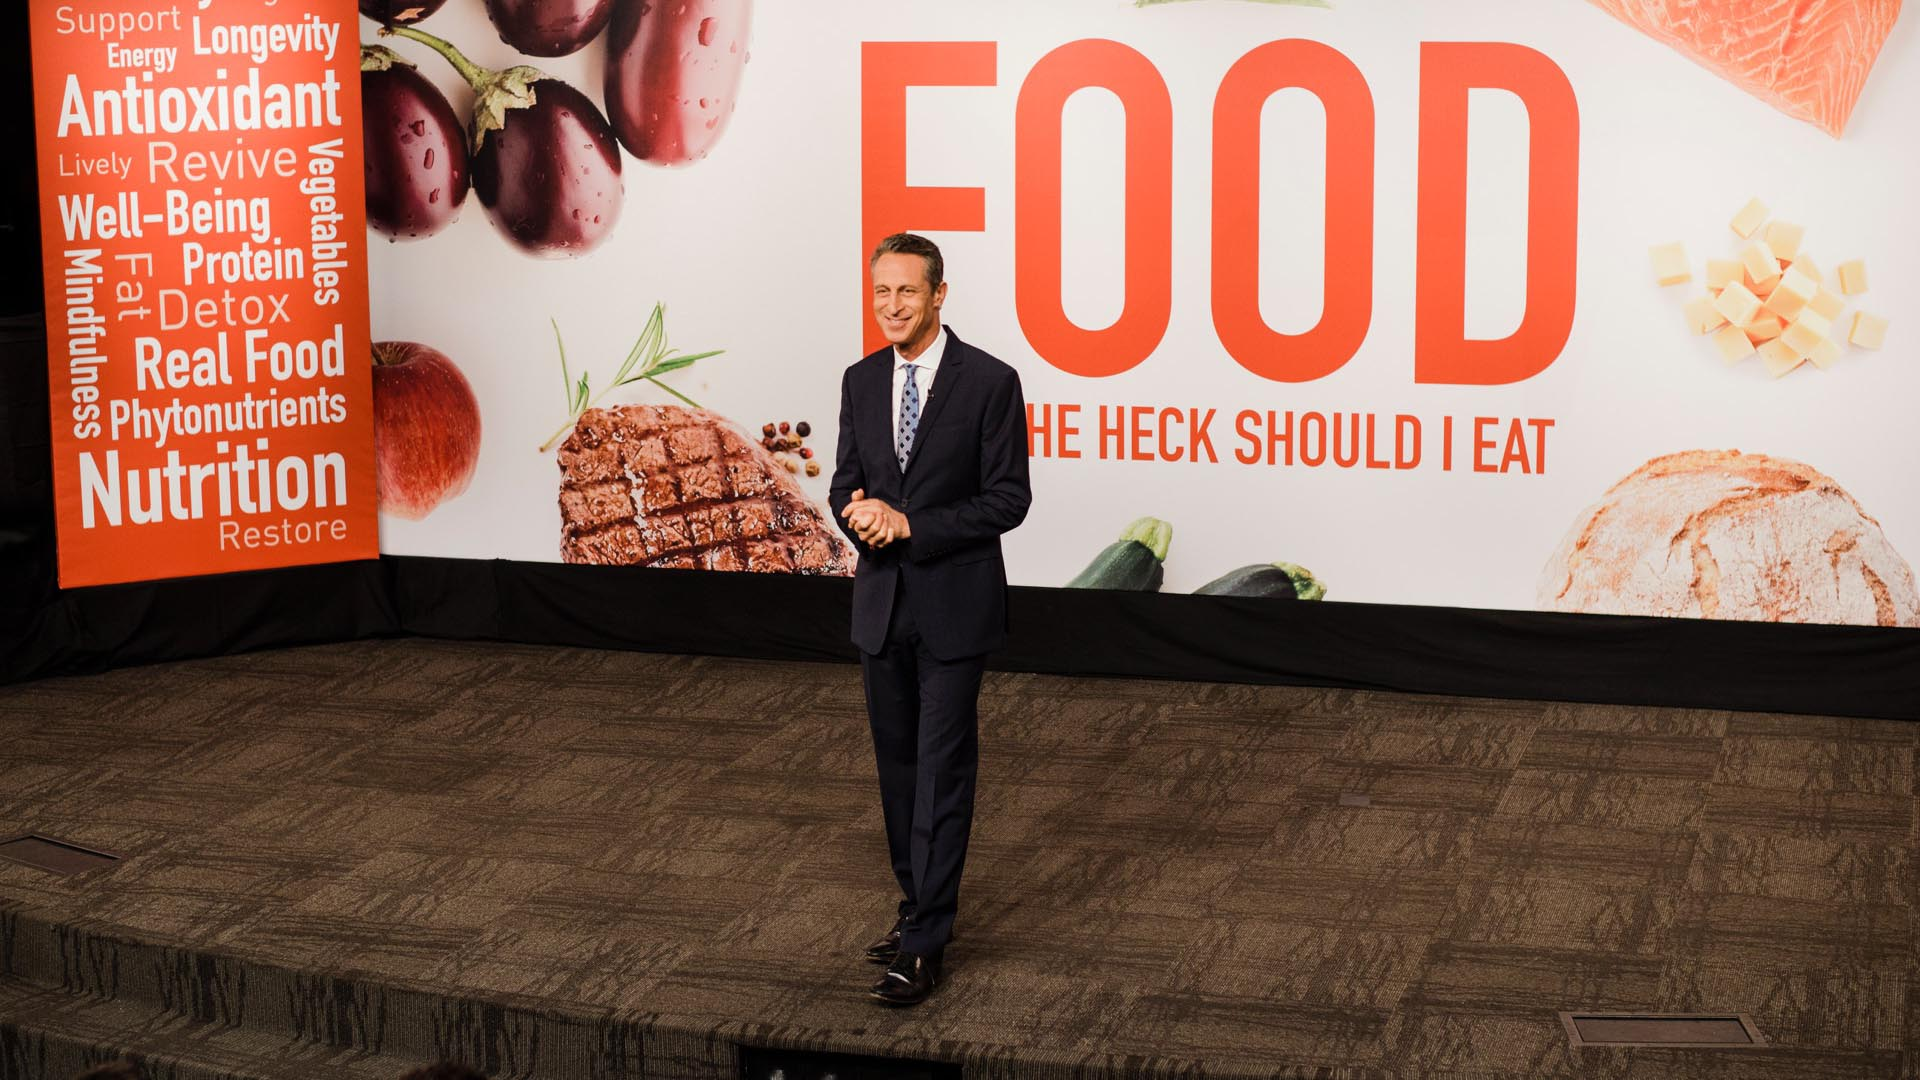 Food: What The Heck Do I Eat? with Mark Hyman, Md